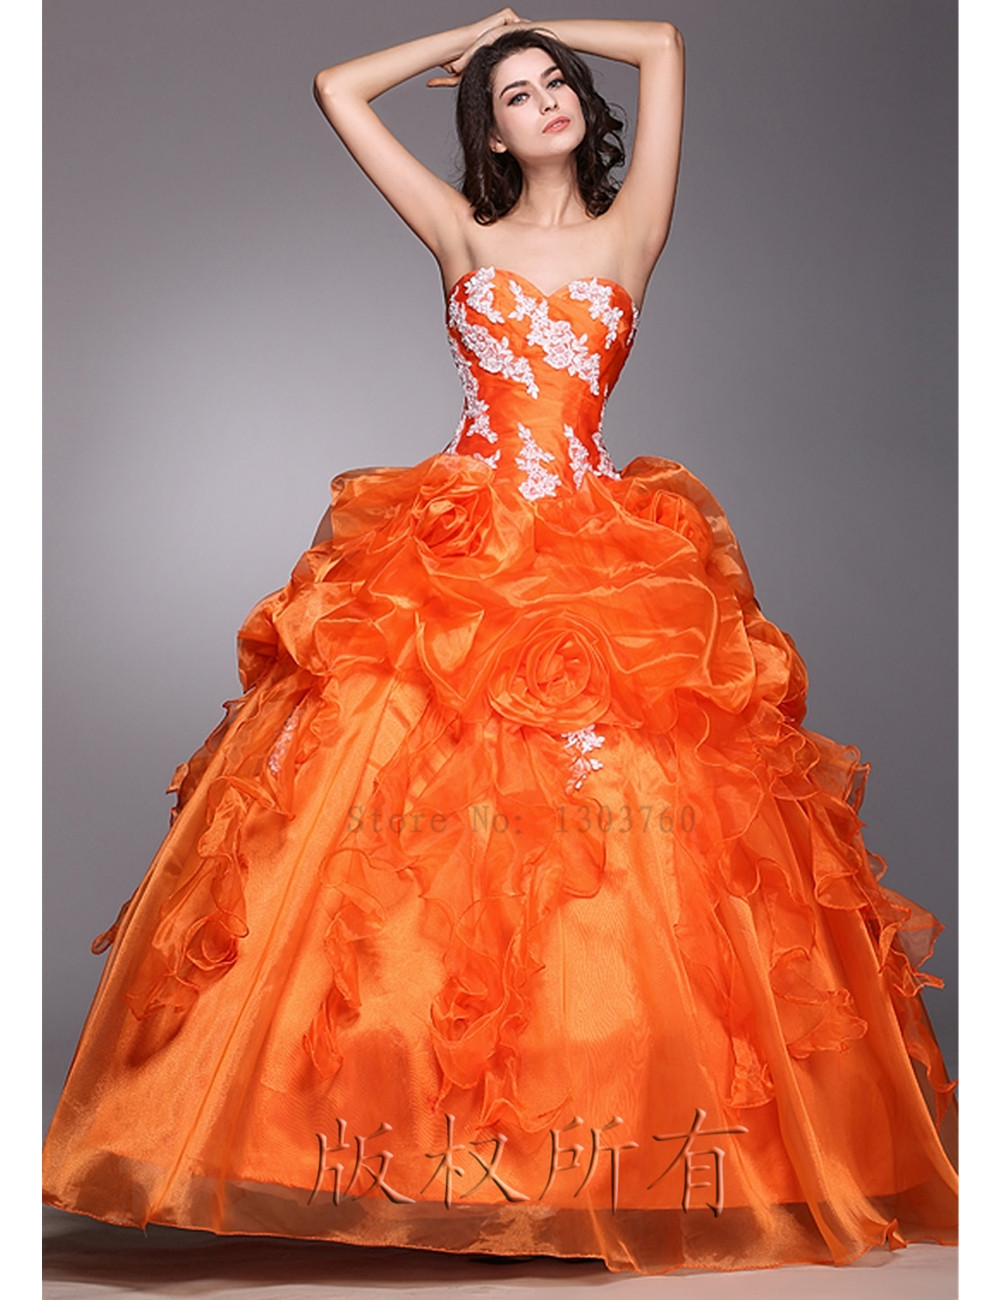 In stock 2016 fashion Flowers Ball Gown Appliques Ruffles Quinceanera Dress Organza Ruched vestidos de 15 anos sweet 16 dresses(China (Mainland))